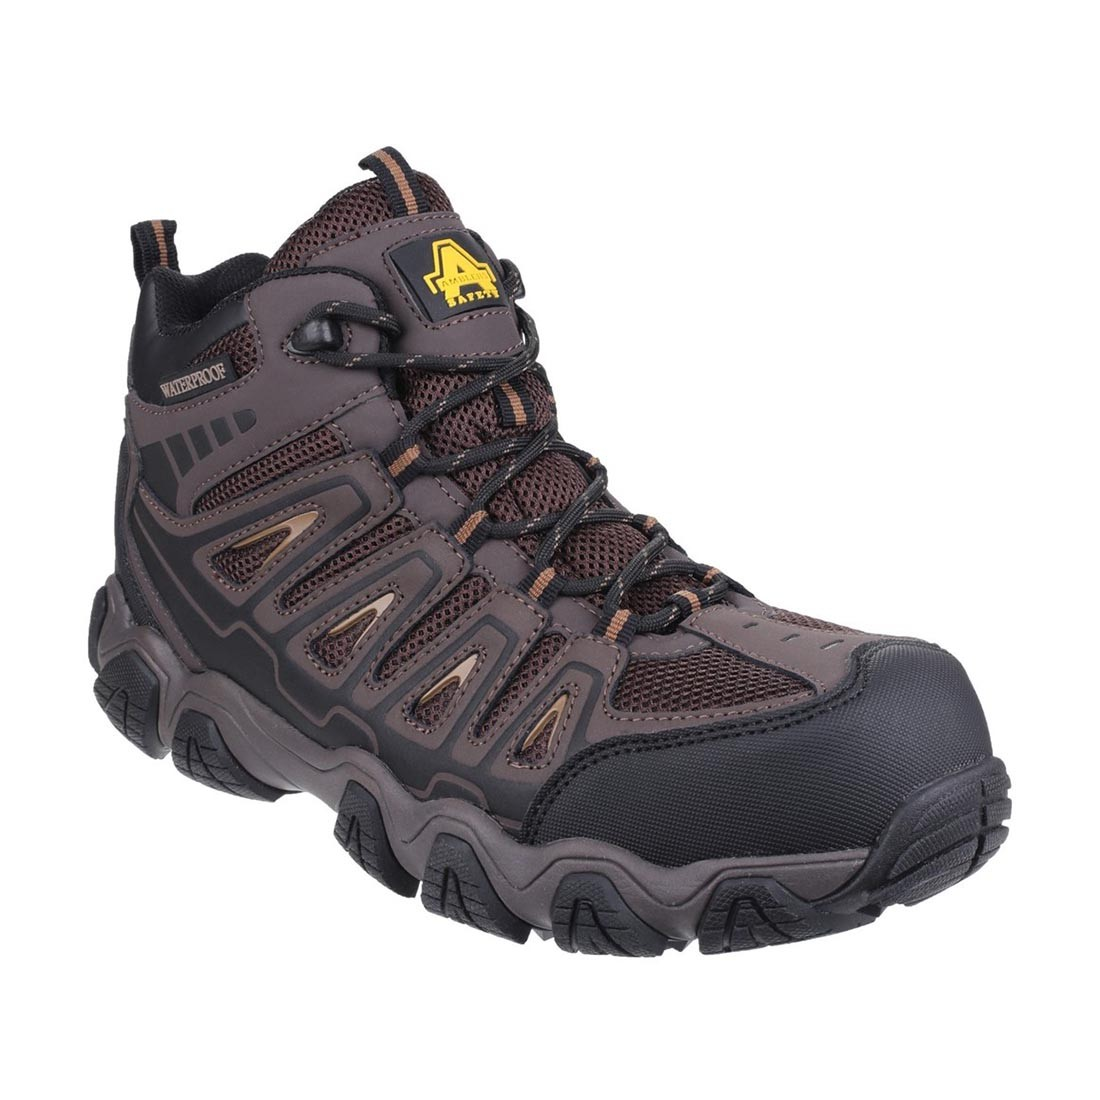 Amblers Safety AS801 Rockingham Metal Free Waterproof Safety Boots